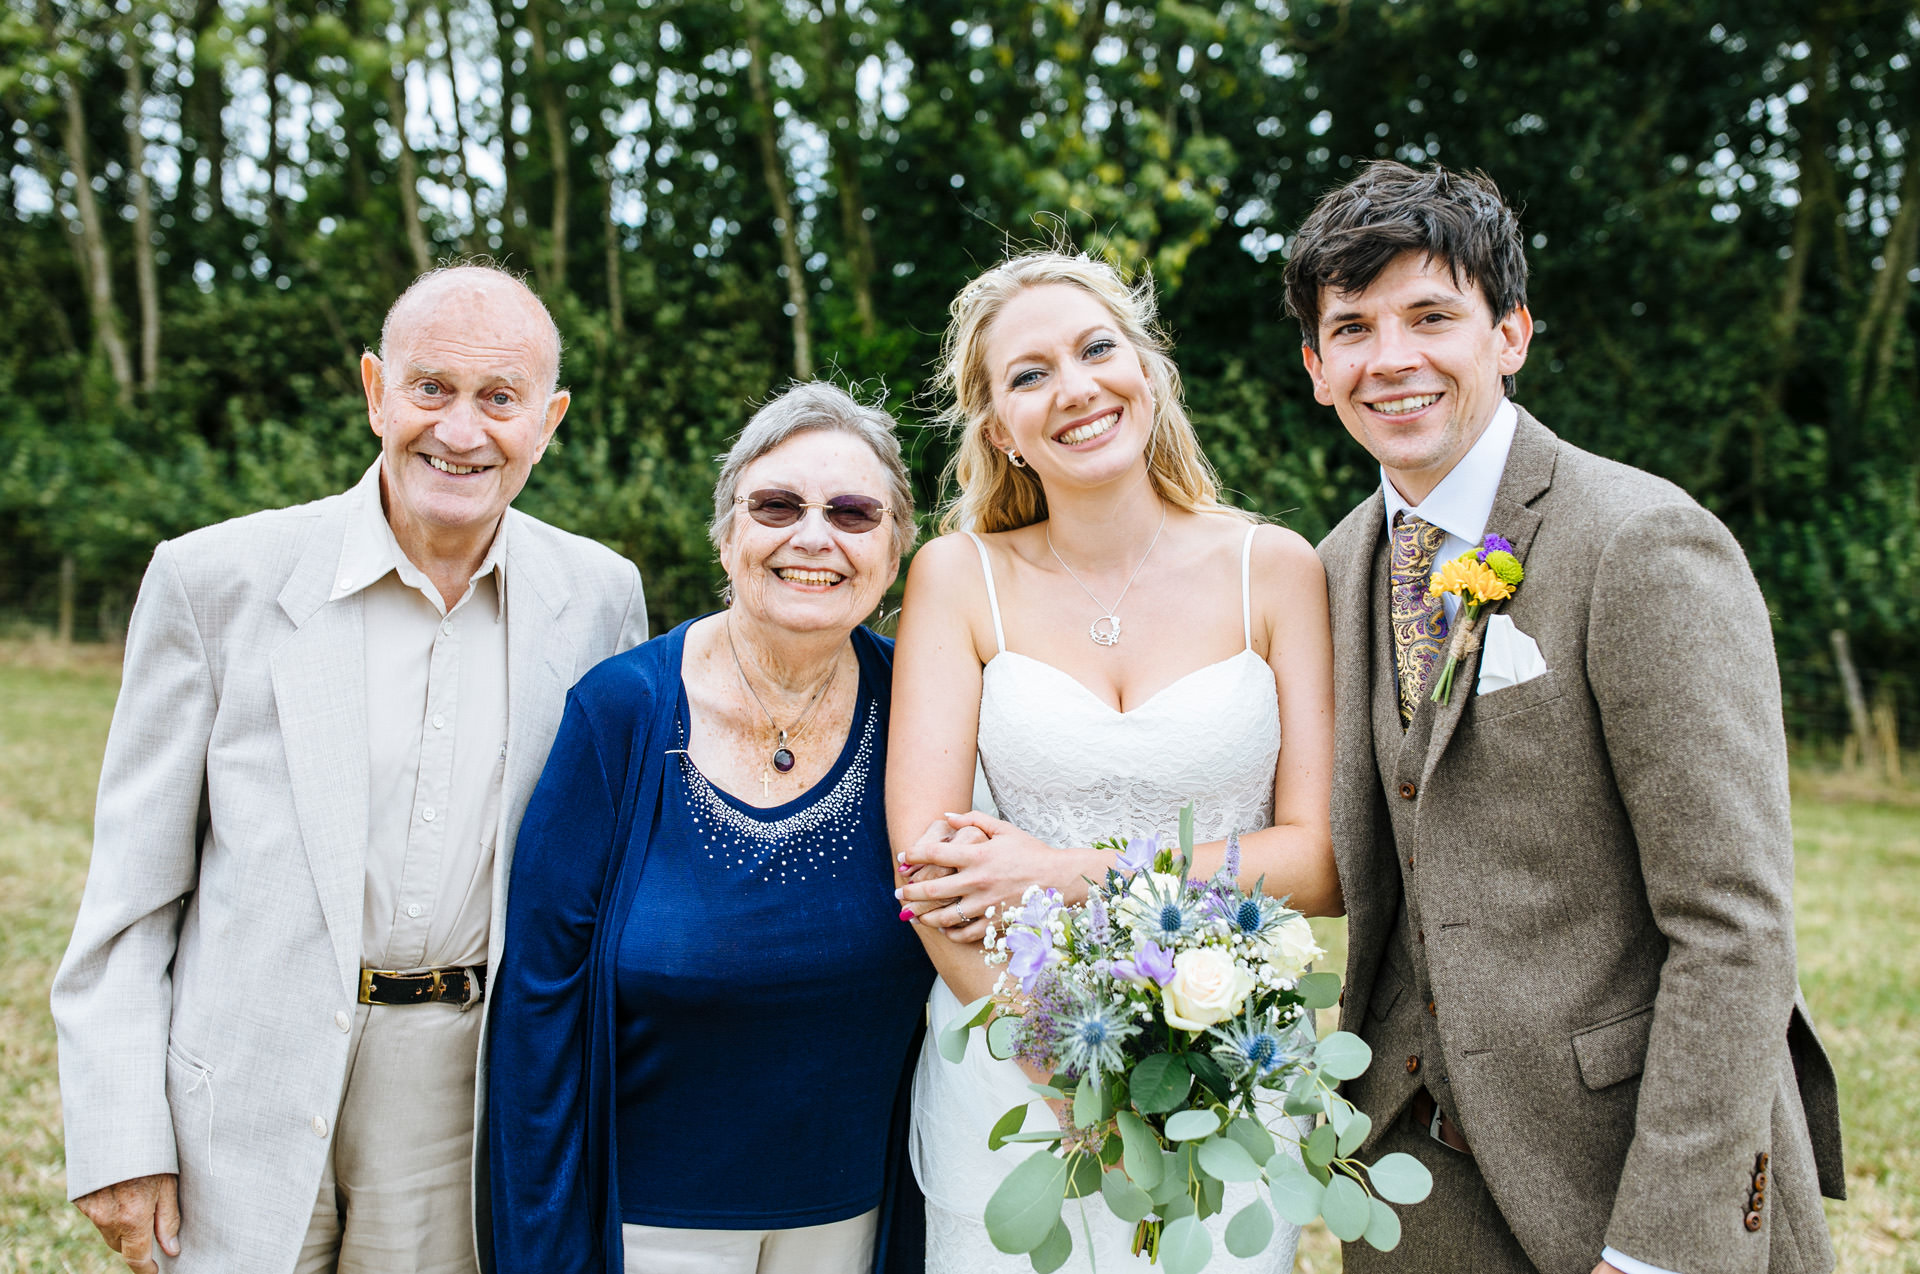 bride and groom posing with her grandparents